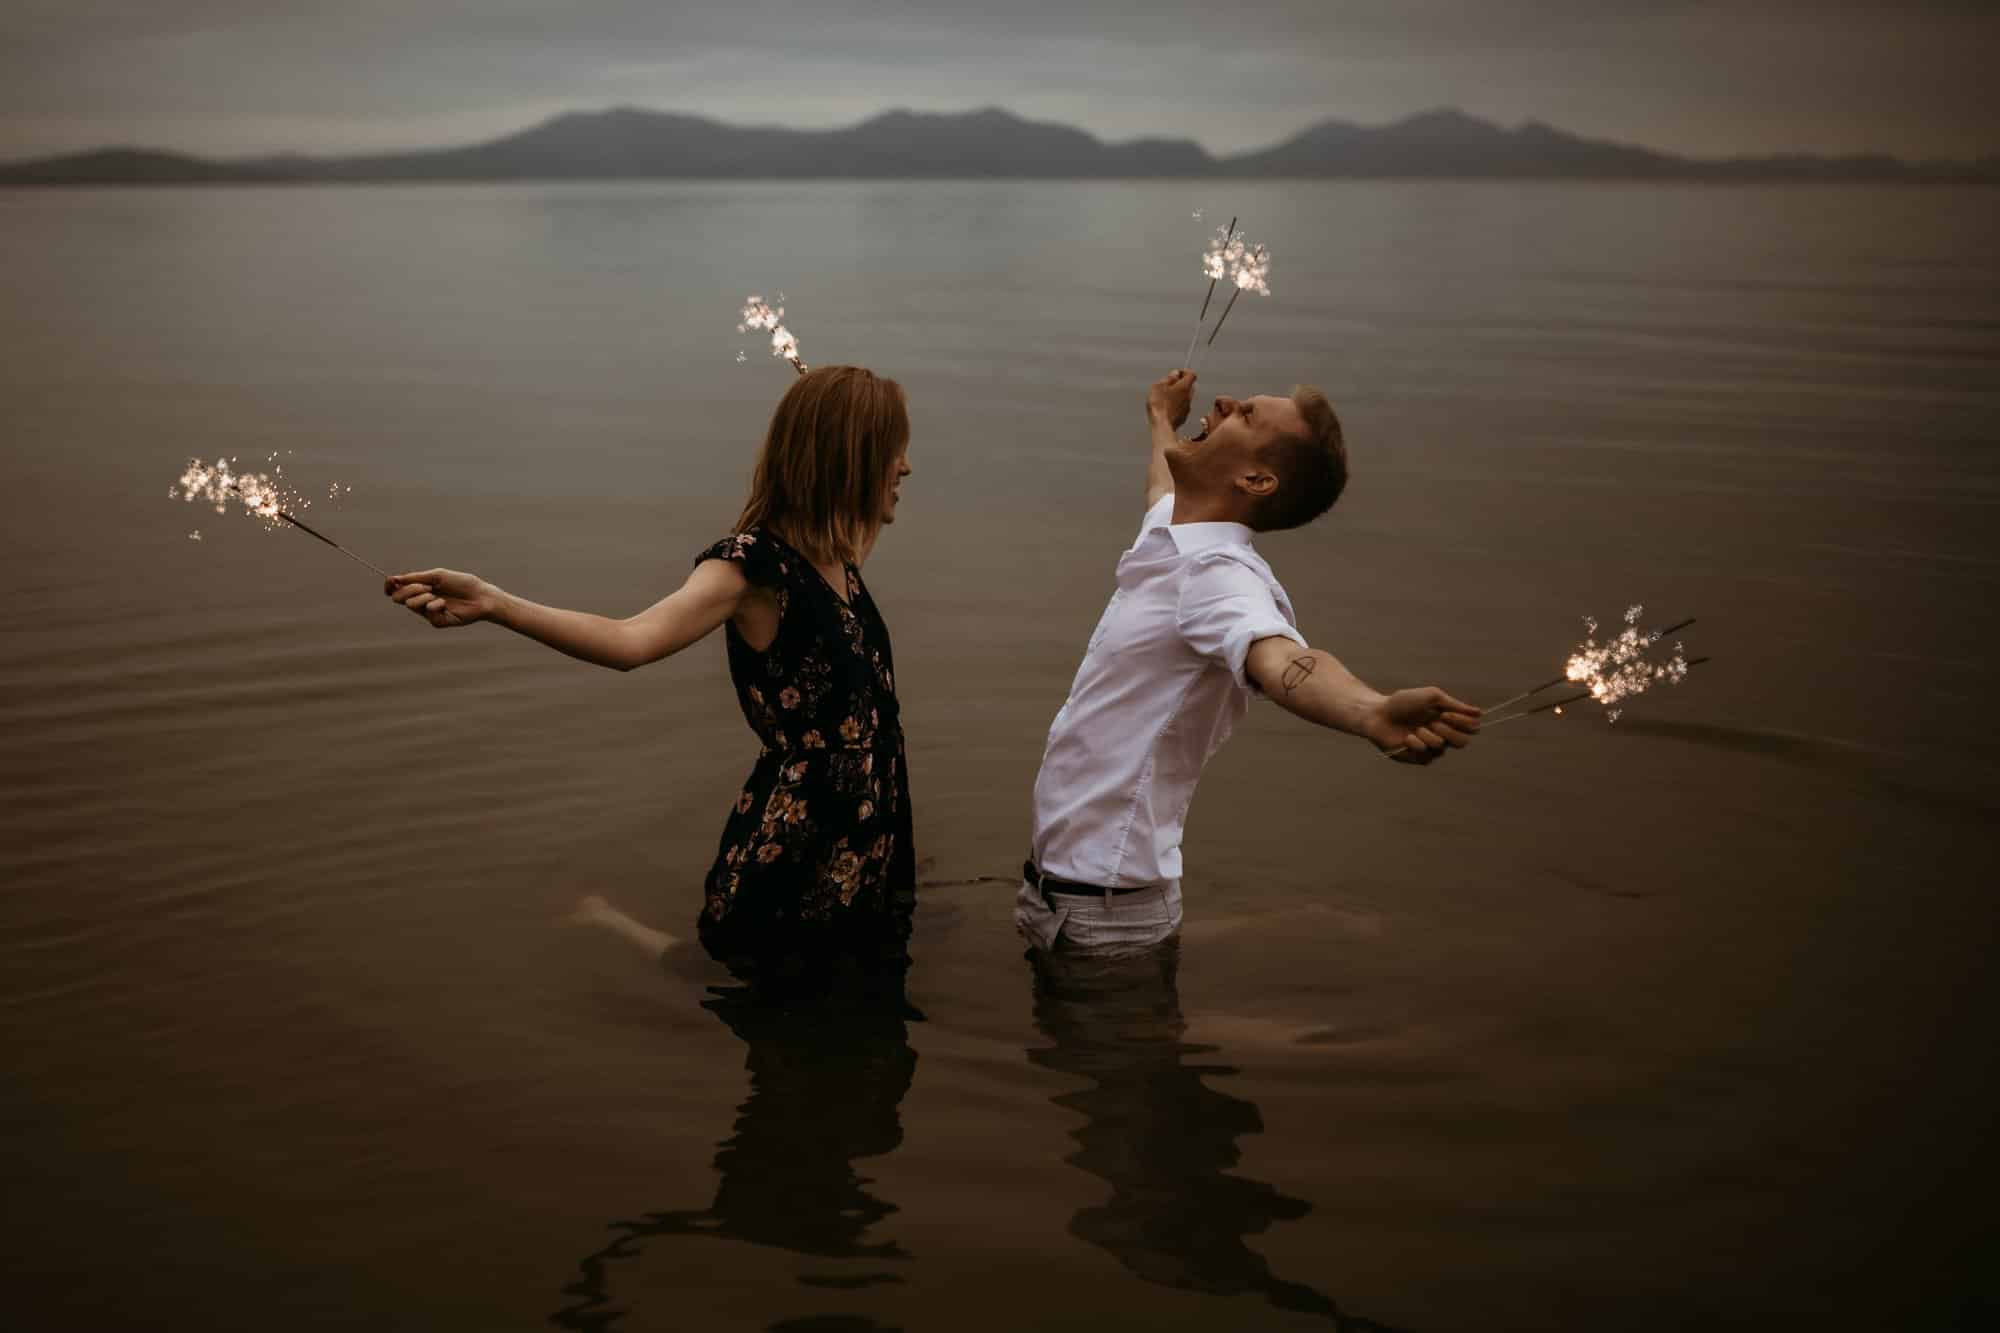 couple in the sea with mountains in the background playing around with lit sparklers